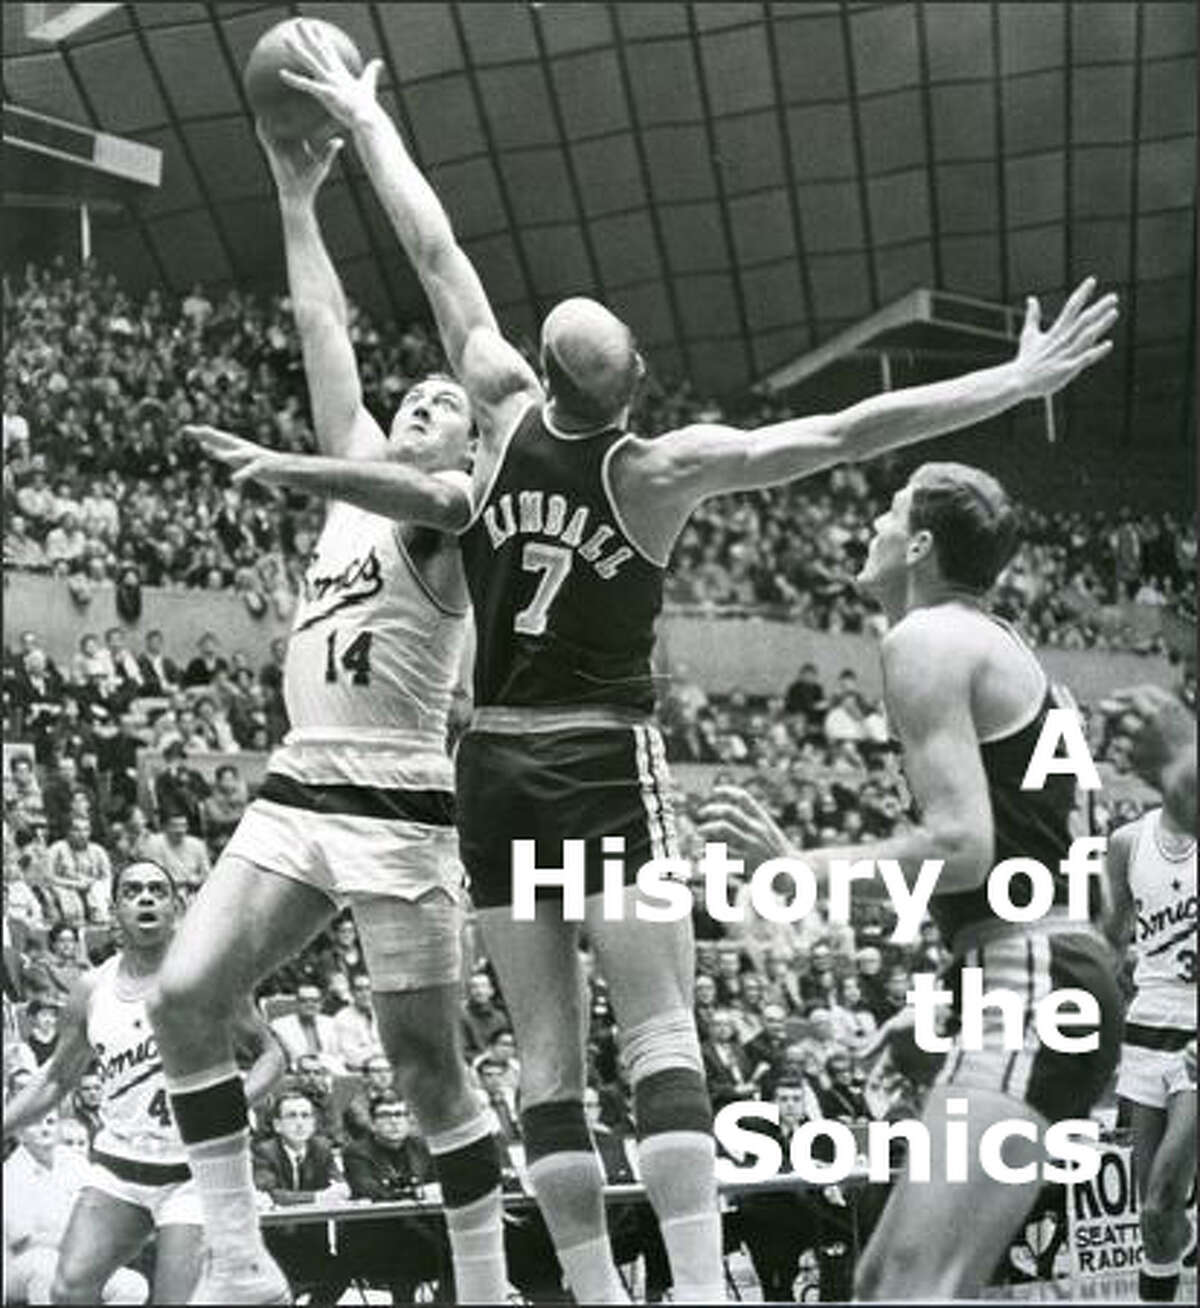 Looking back at the Sonics through the years...